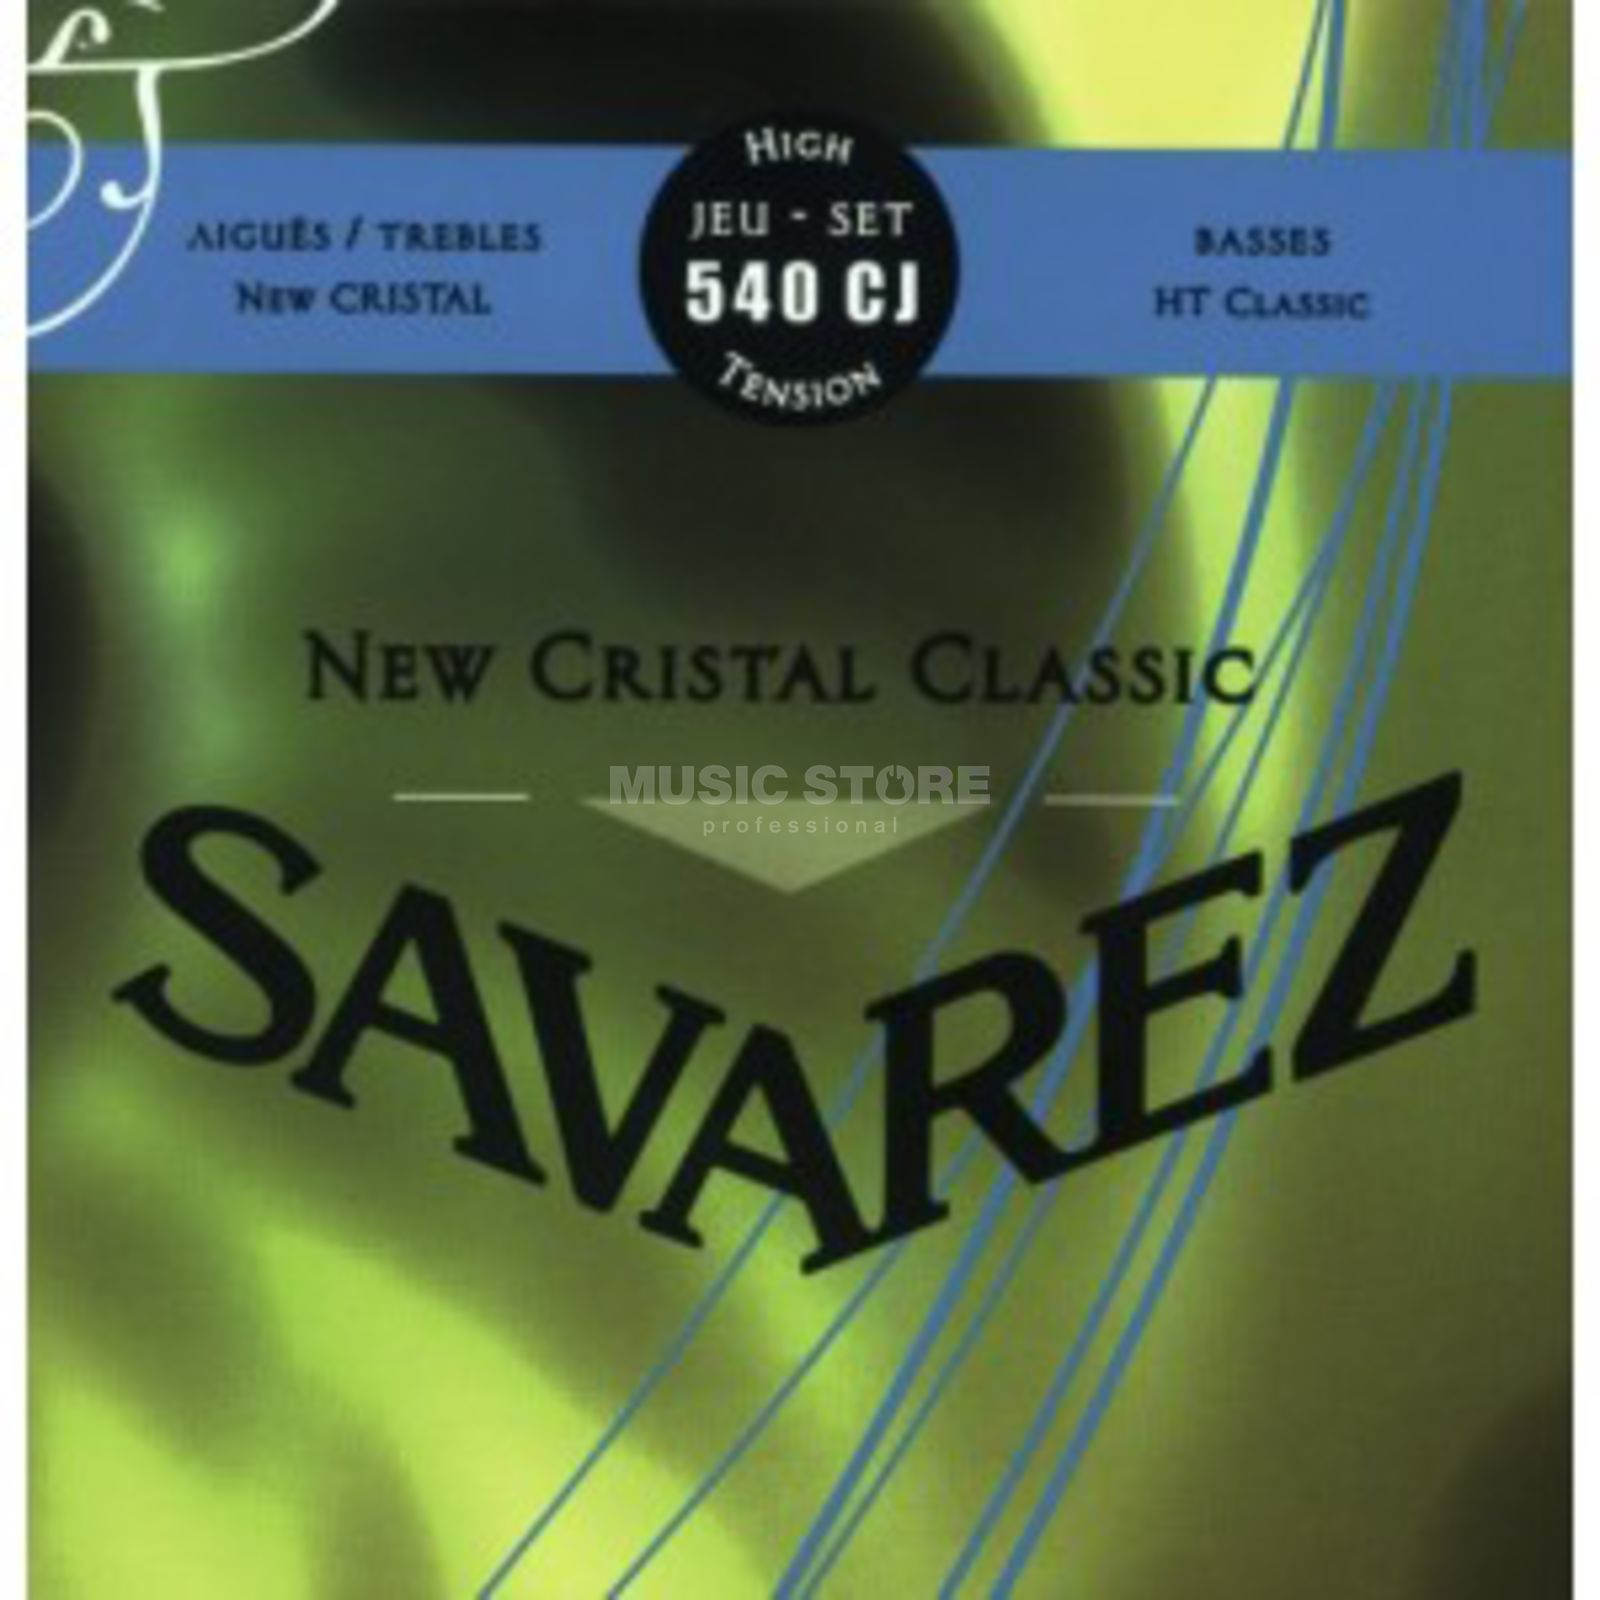 Savarez K-Git. Saiten 540CJ Corum New Cristal, High Tension Produktbild